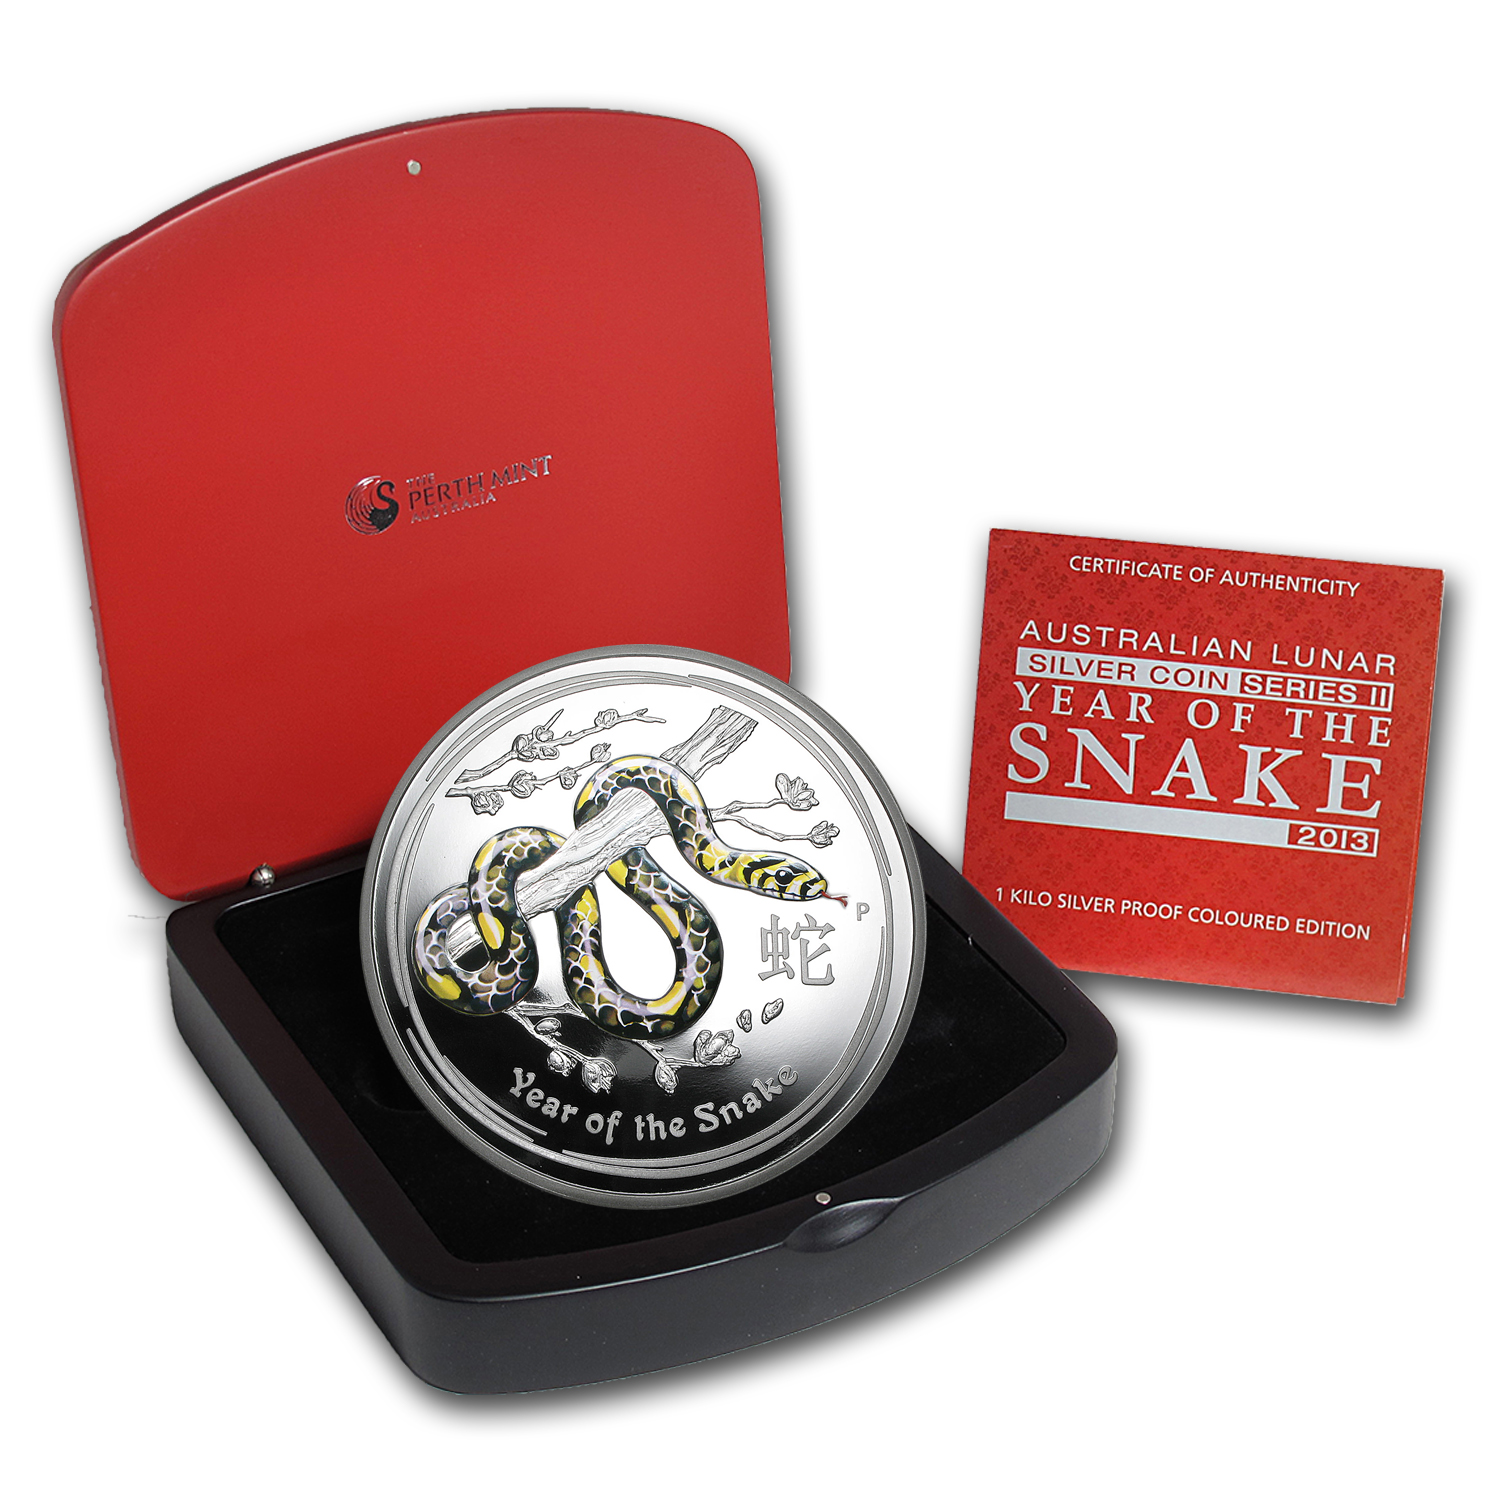 2013 1 Kilo Silver Australian Year of the Snake Colorized Coin